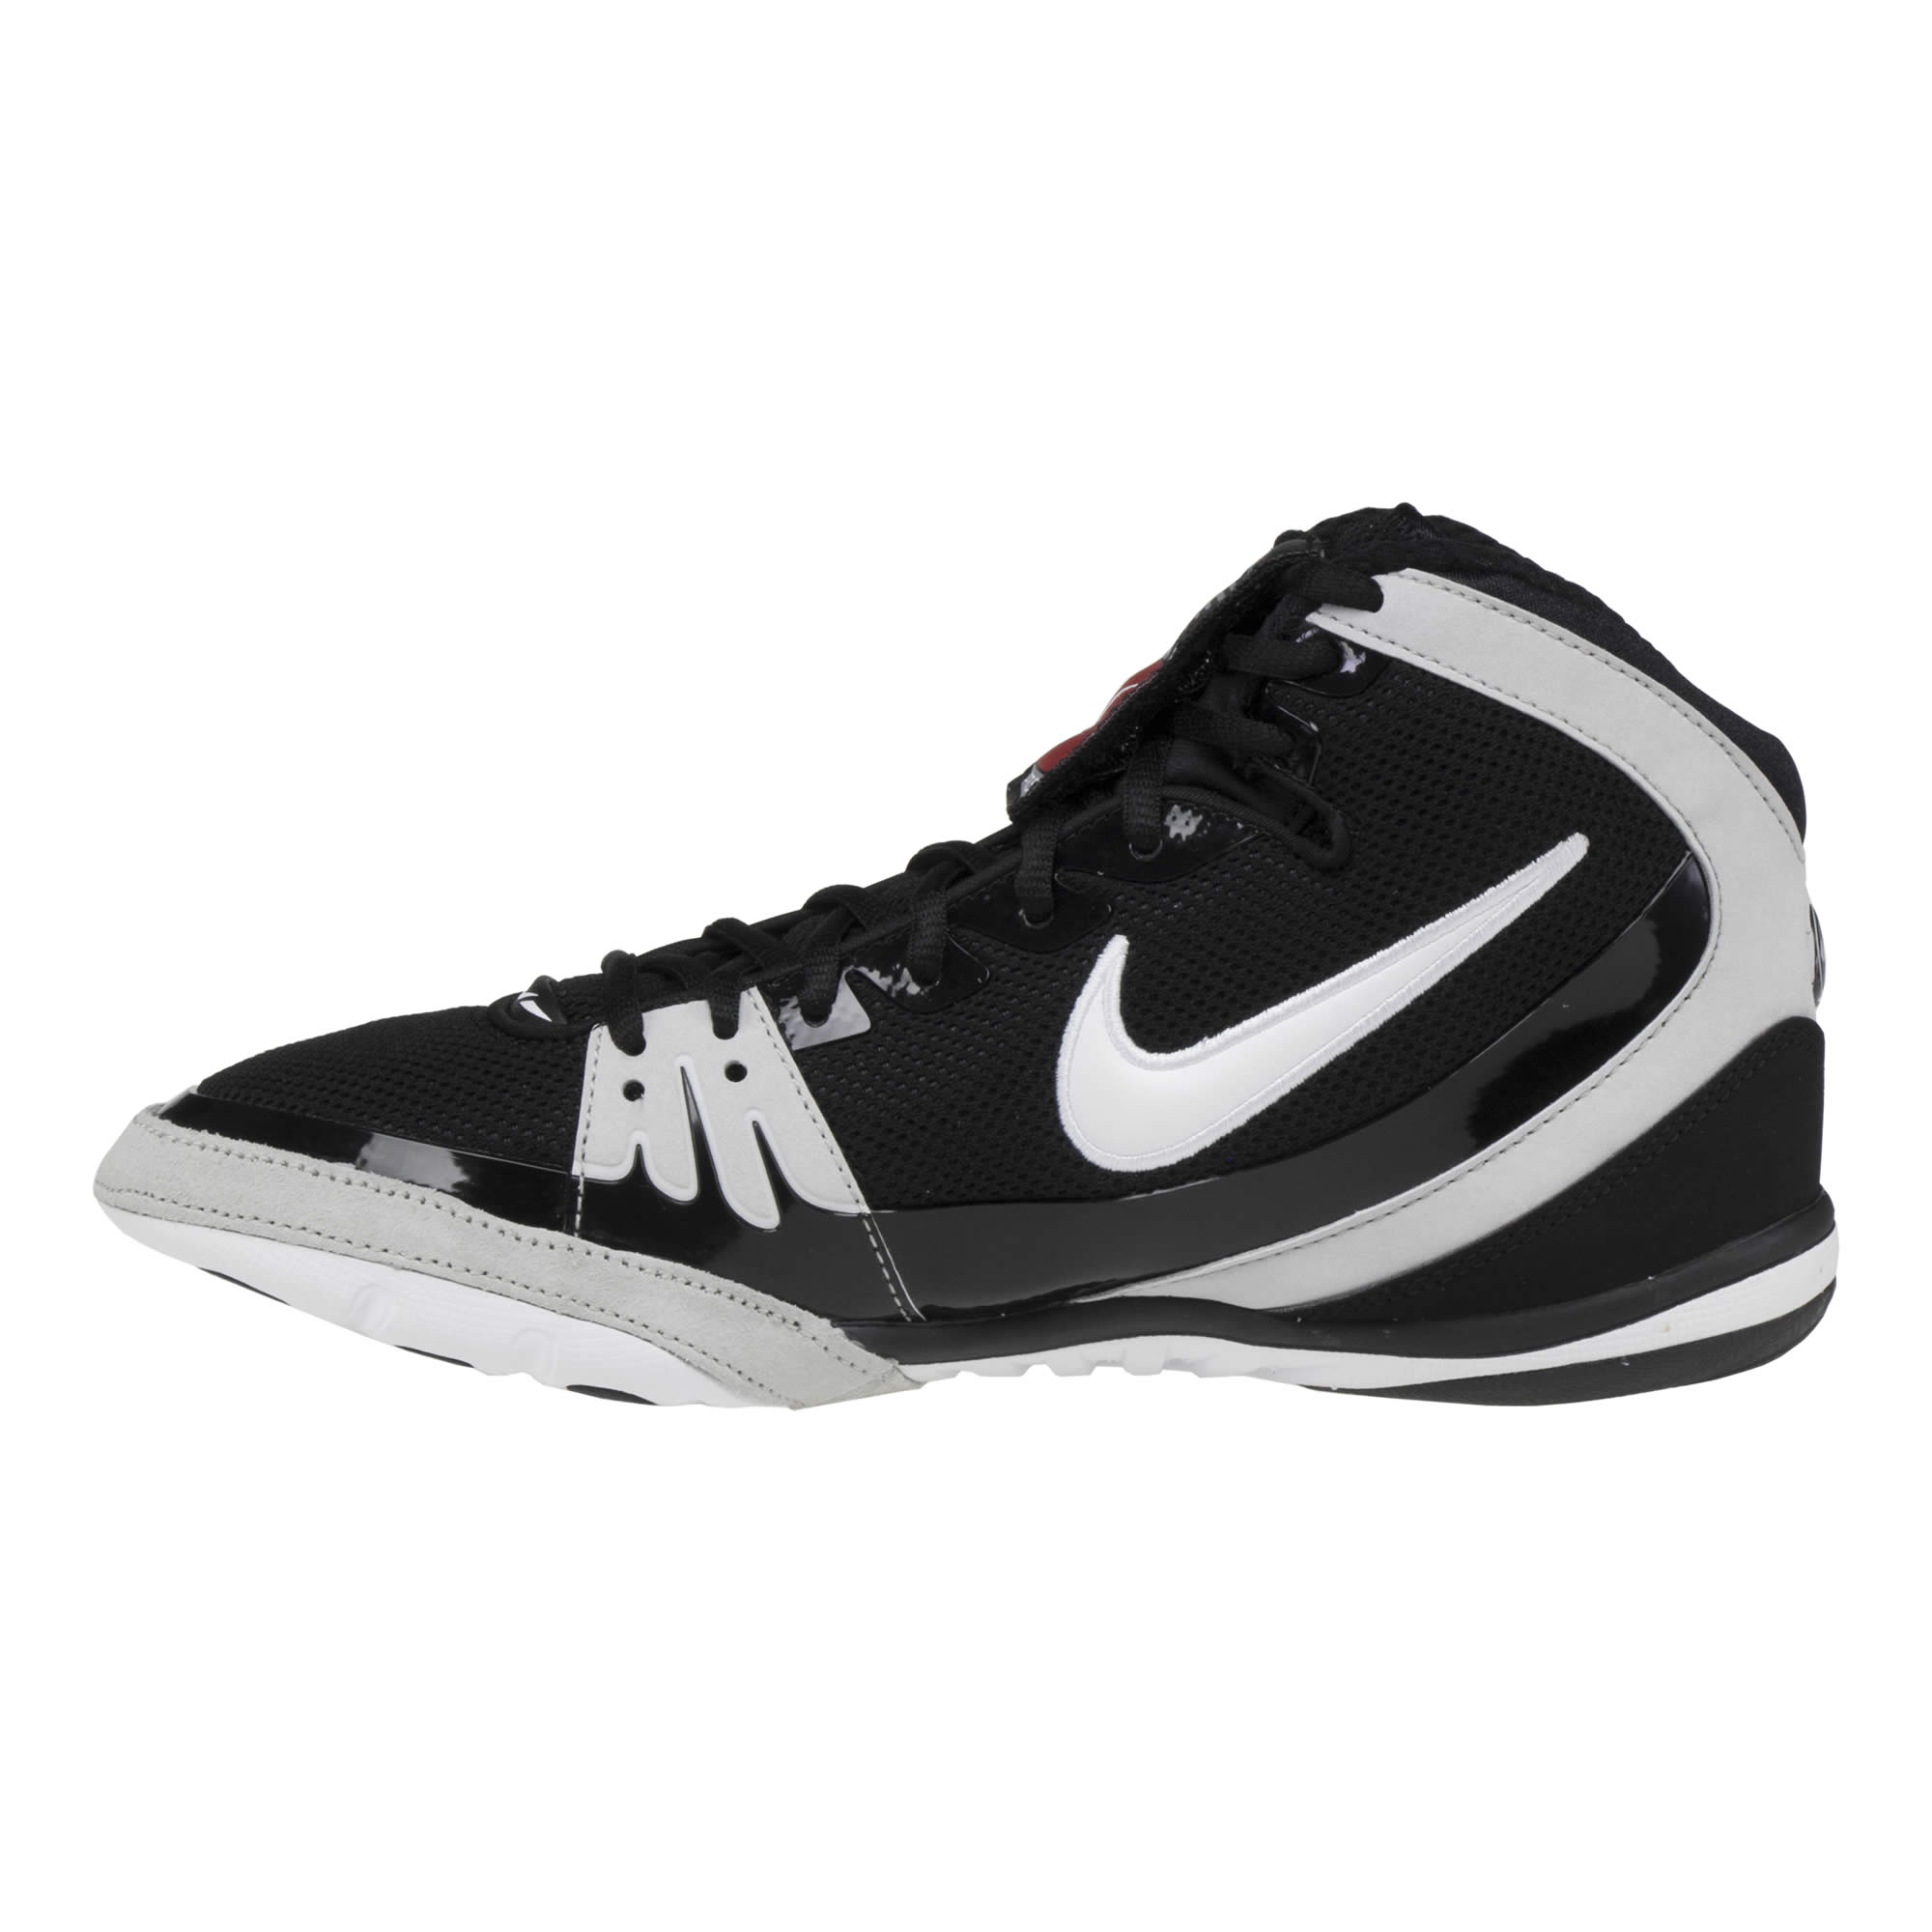 newest collection 127ca 57c60 Nike Freeks Shoes   WrestlingMart   Free Shipping